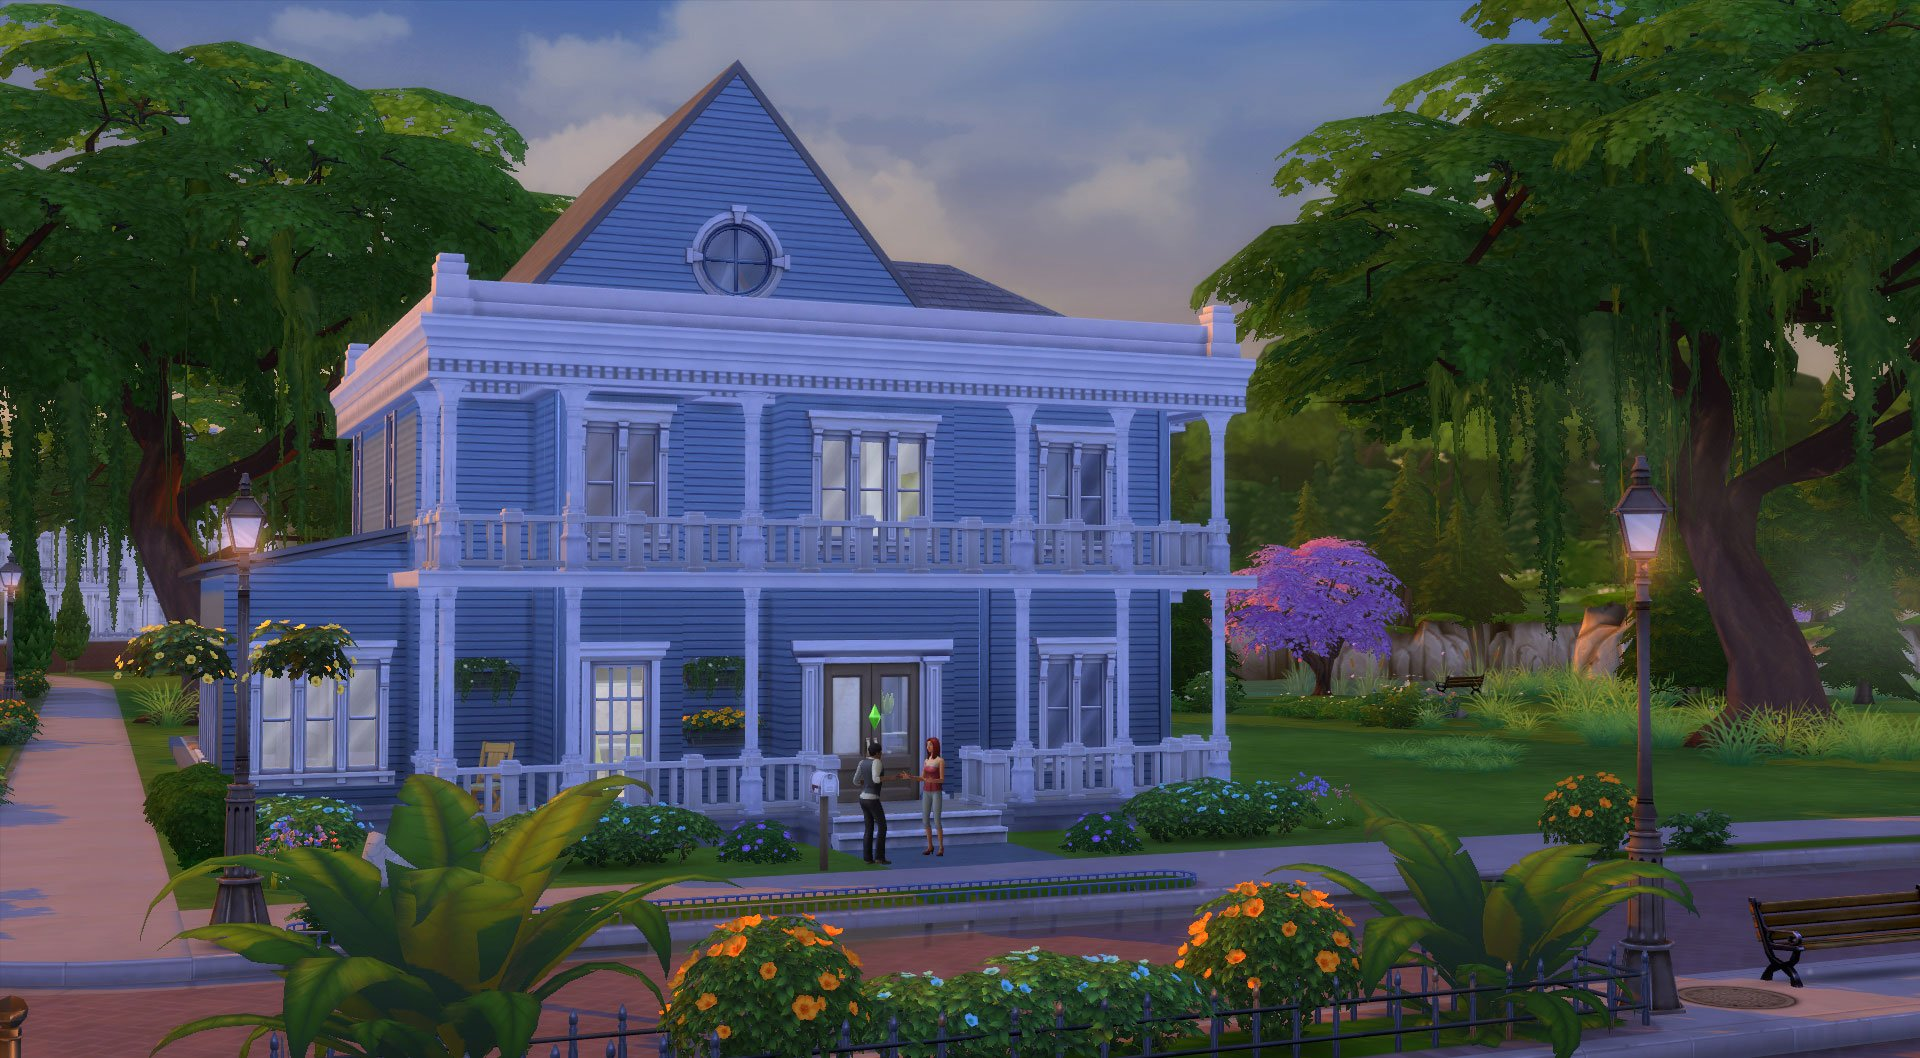 file_9046_the-sims-4-house-new-video-game-releases